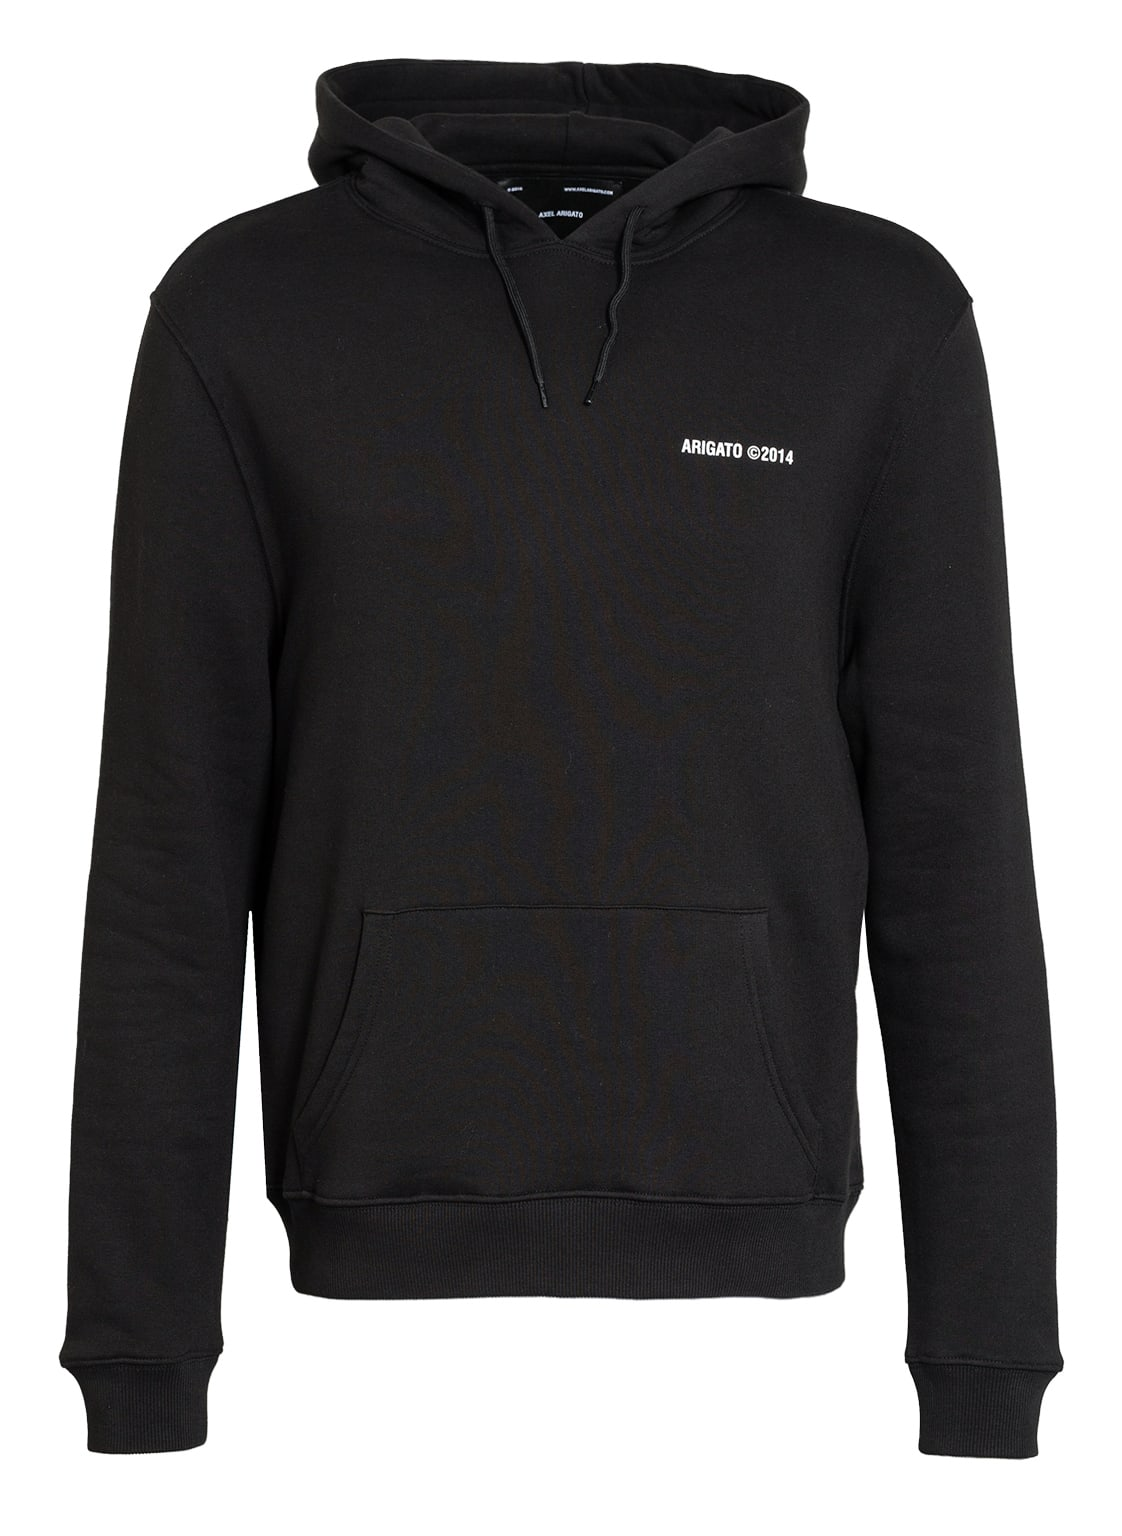 Image of Axel Arigato Hoodie London schwarz